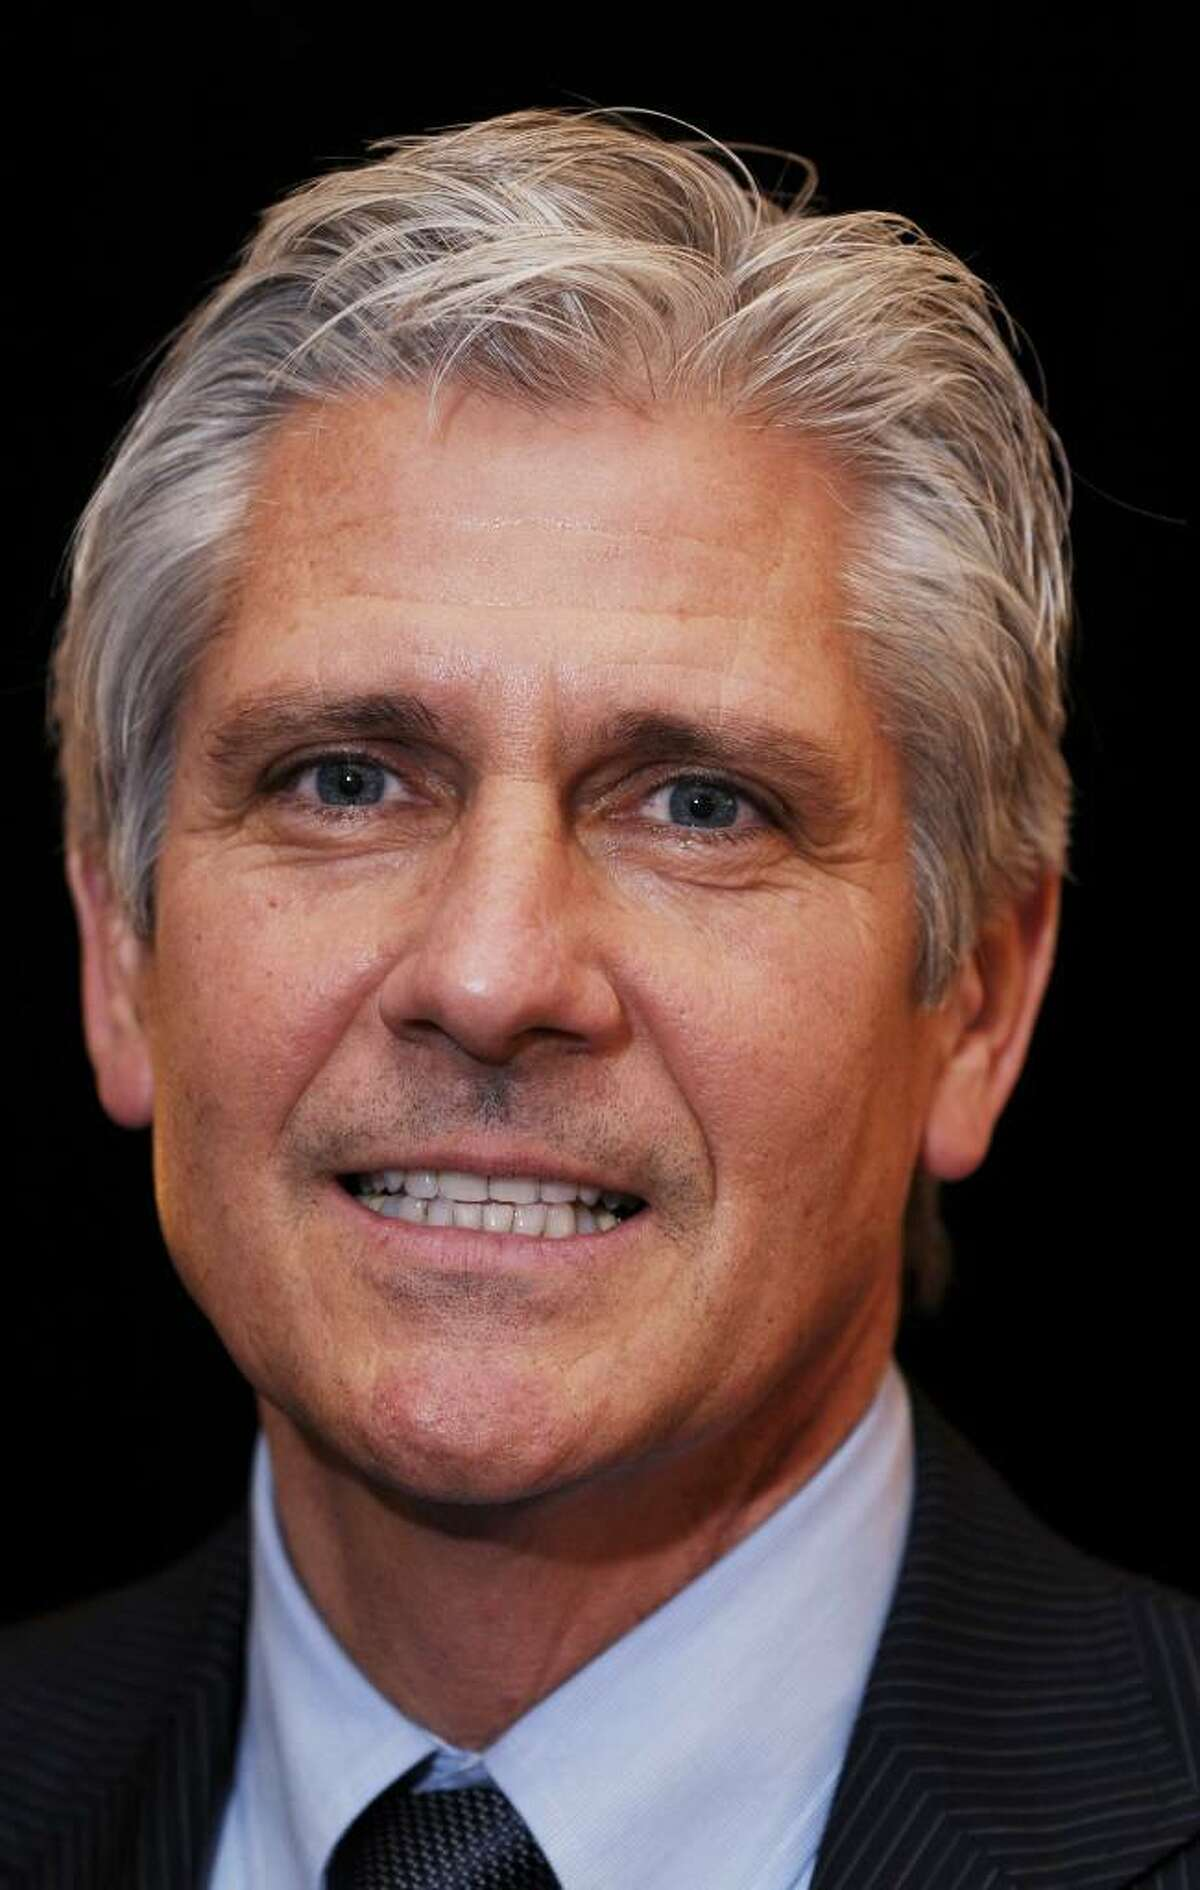 Bruce Blakeman makes the GOP cut for a primary to seek the U.S. Senate seat held by Kirsten Gillibrand, a Democratic appointee. (Luanne M. Ferris / Times Union)